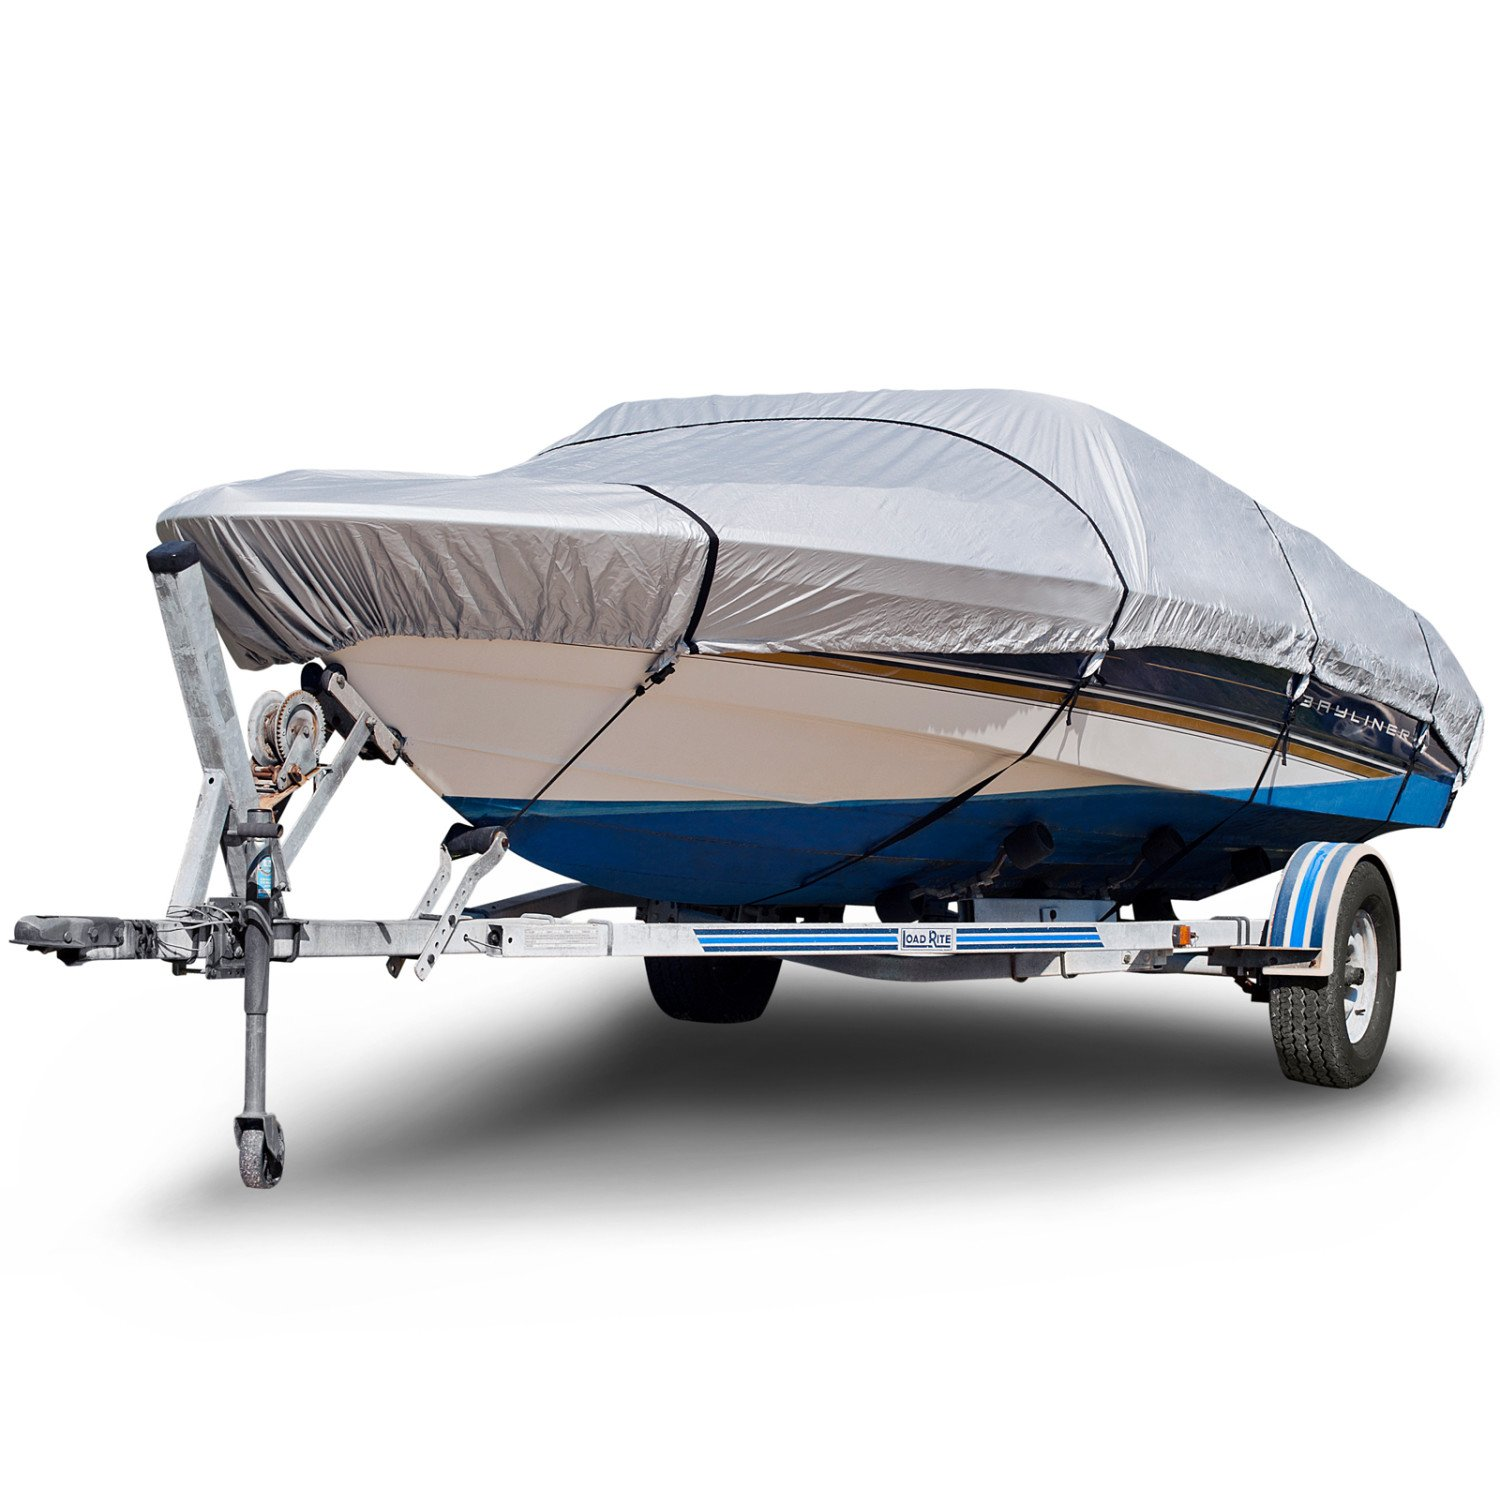 Budge 150 Denier Boat Cover Fits V Hull Runabout Boats B 150 X8 24 To 26 Long Silver